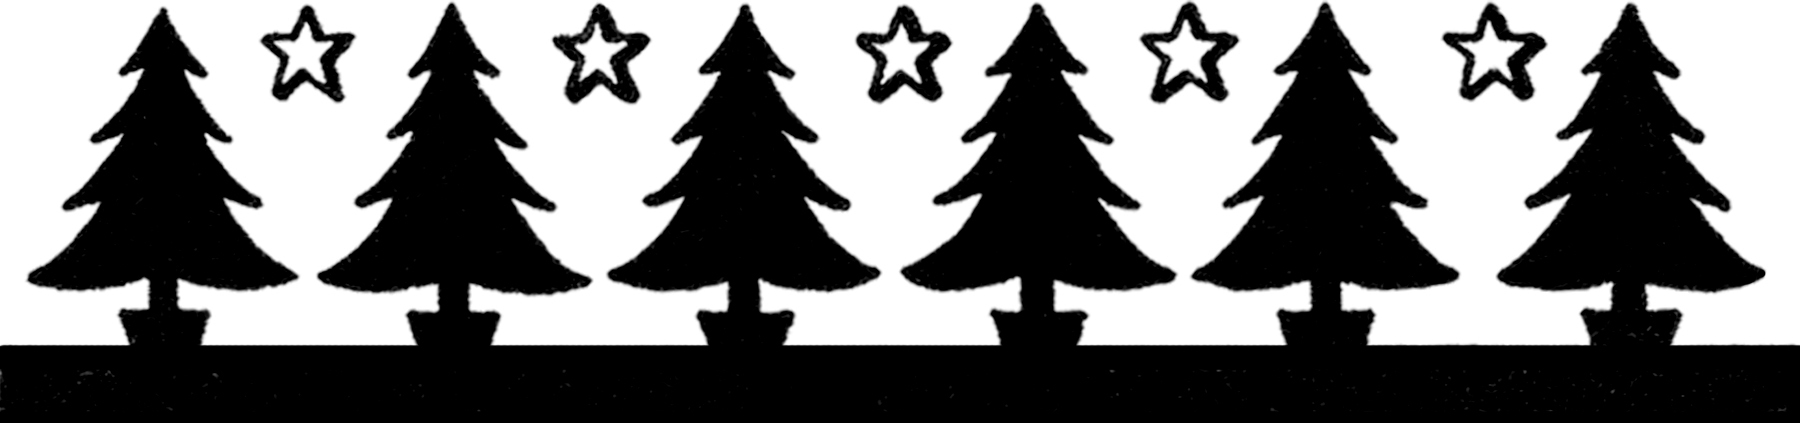 Christmas Border Black And White.Christmas Decorations Clipart Borders Black And White 20